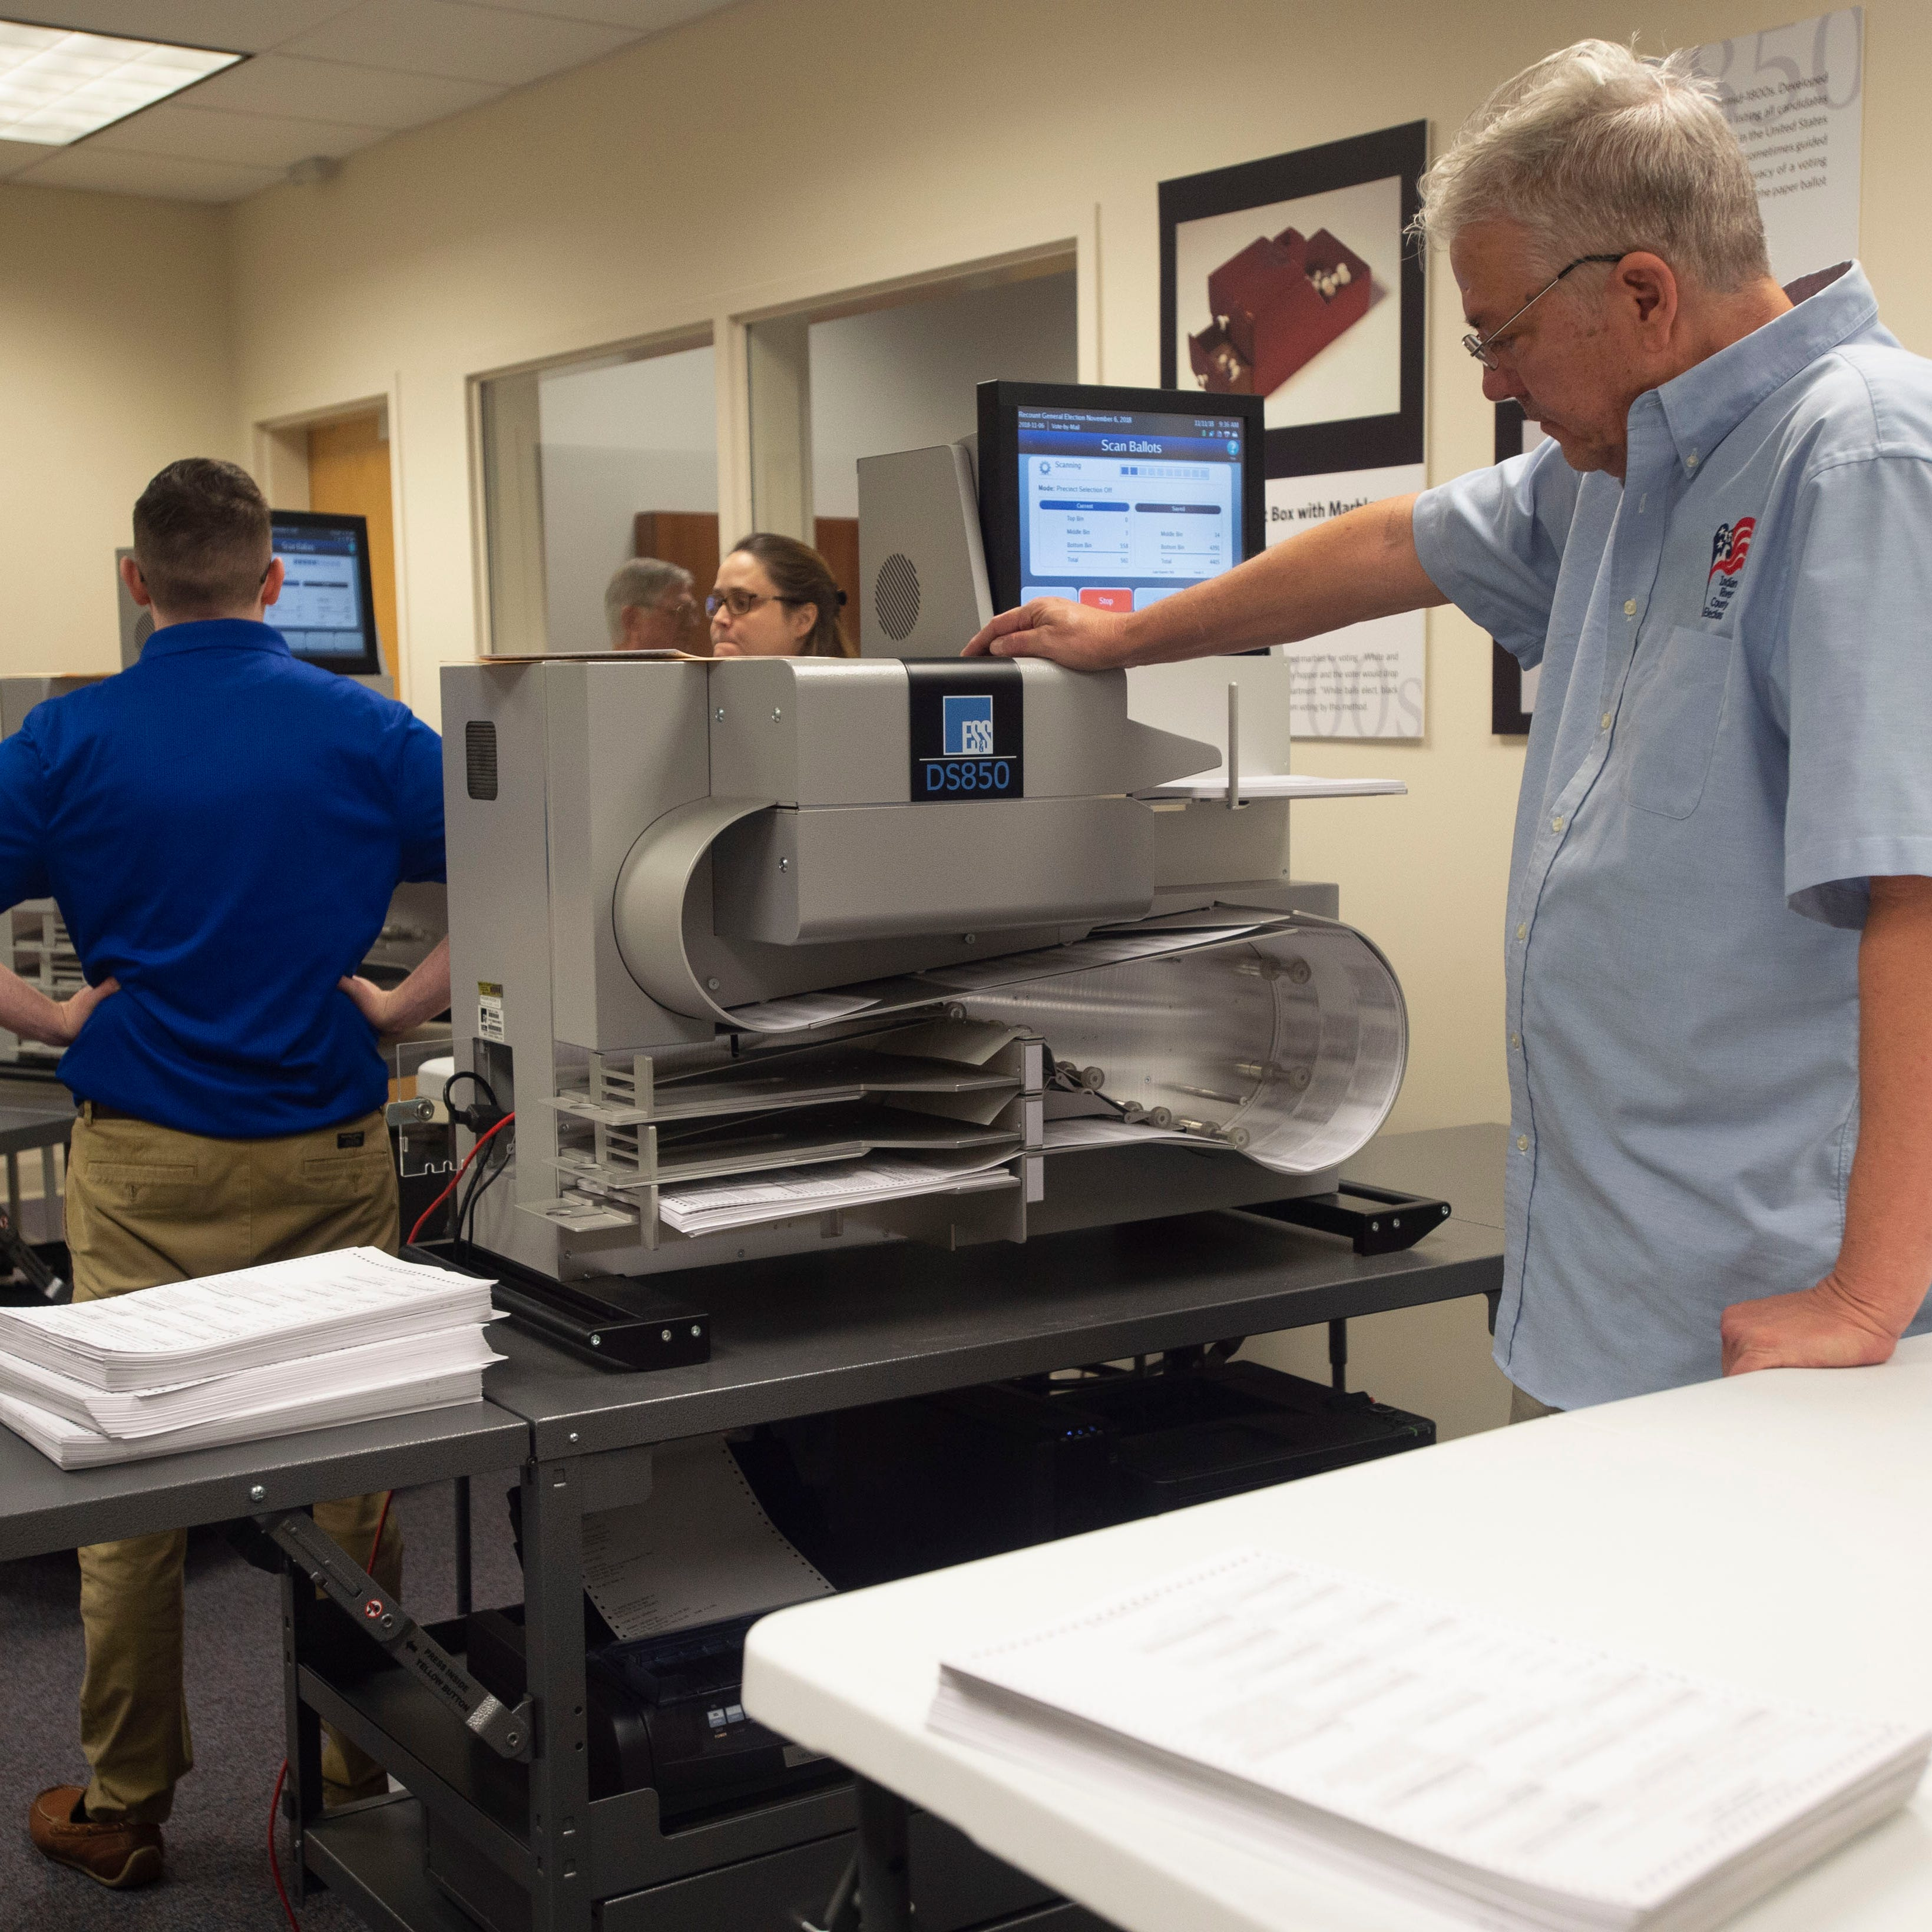 Florida recount updates: System 'working perfectly' in Indian River County recount